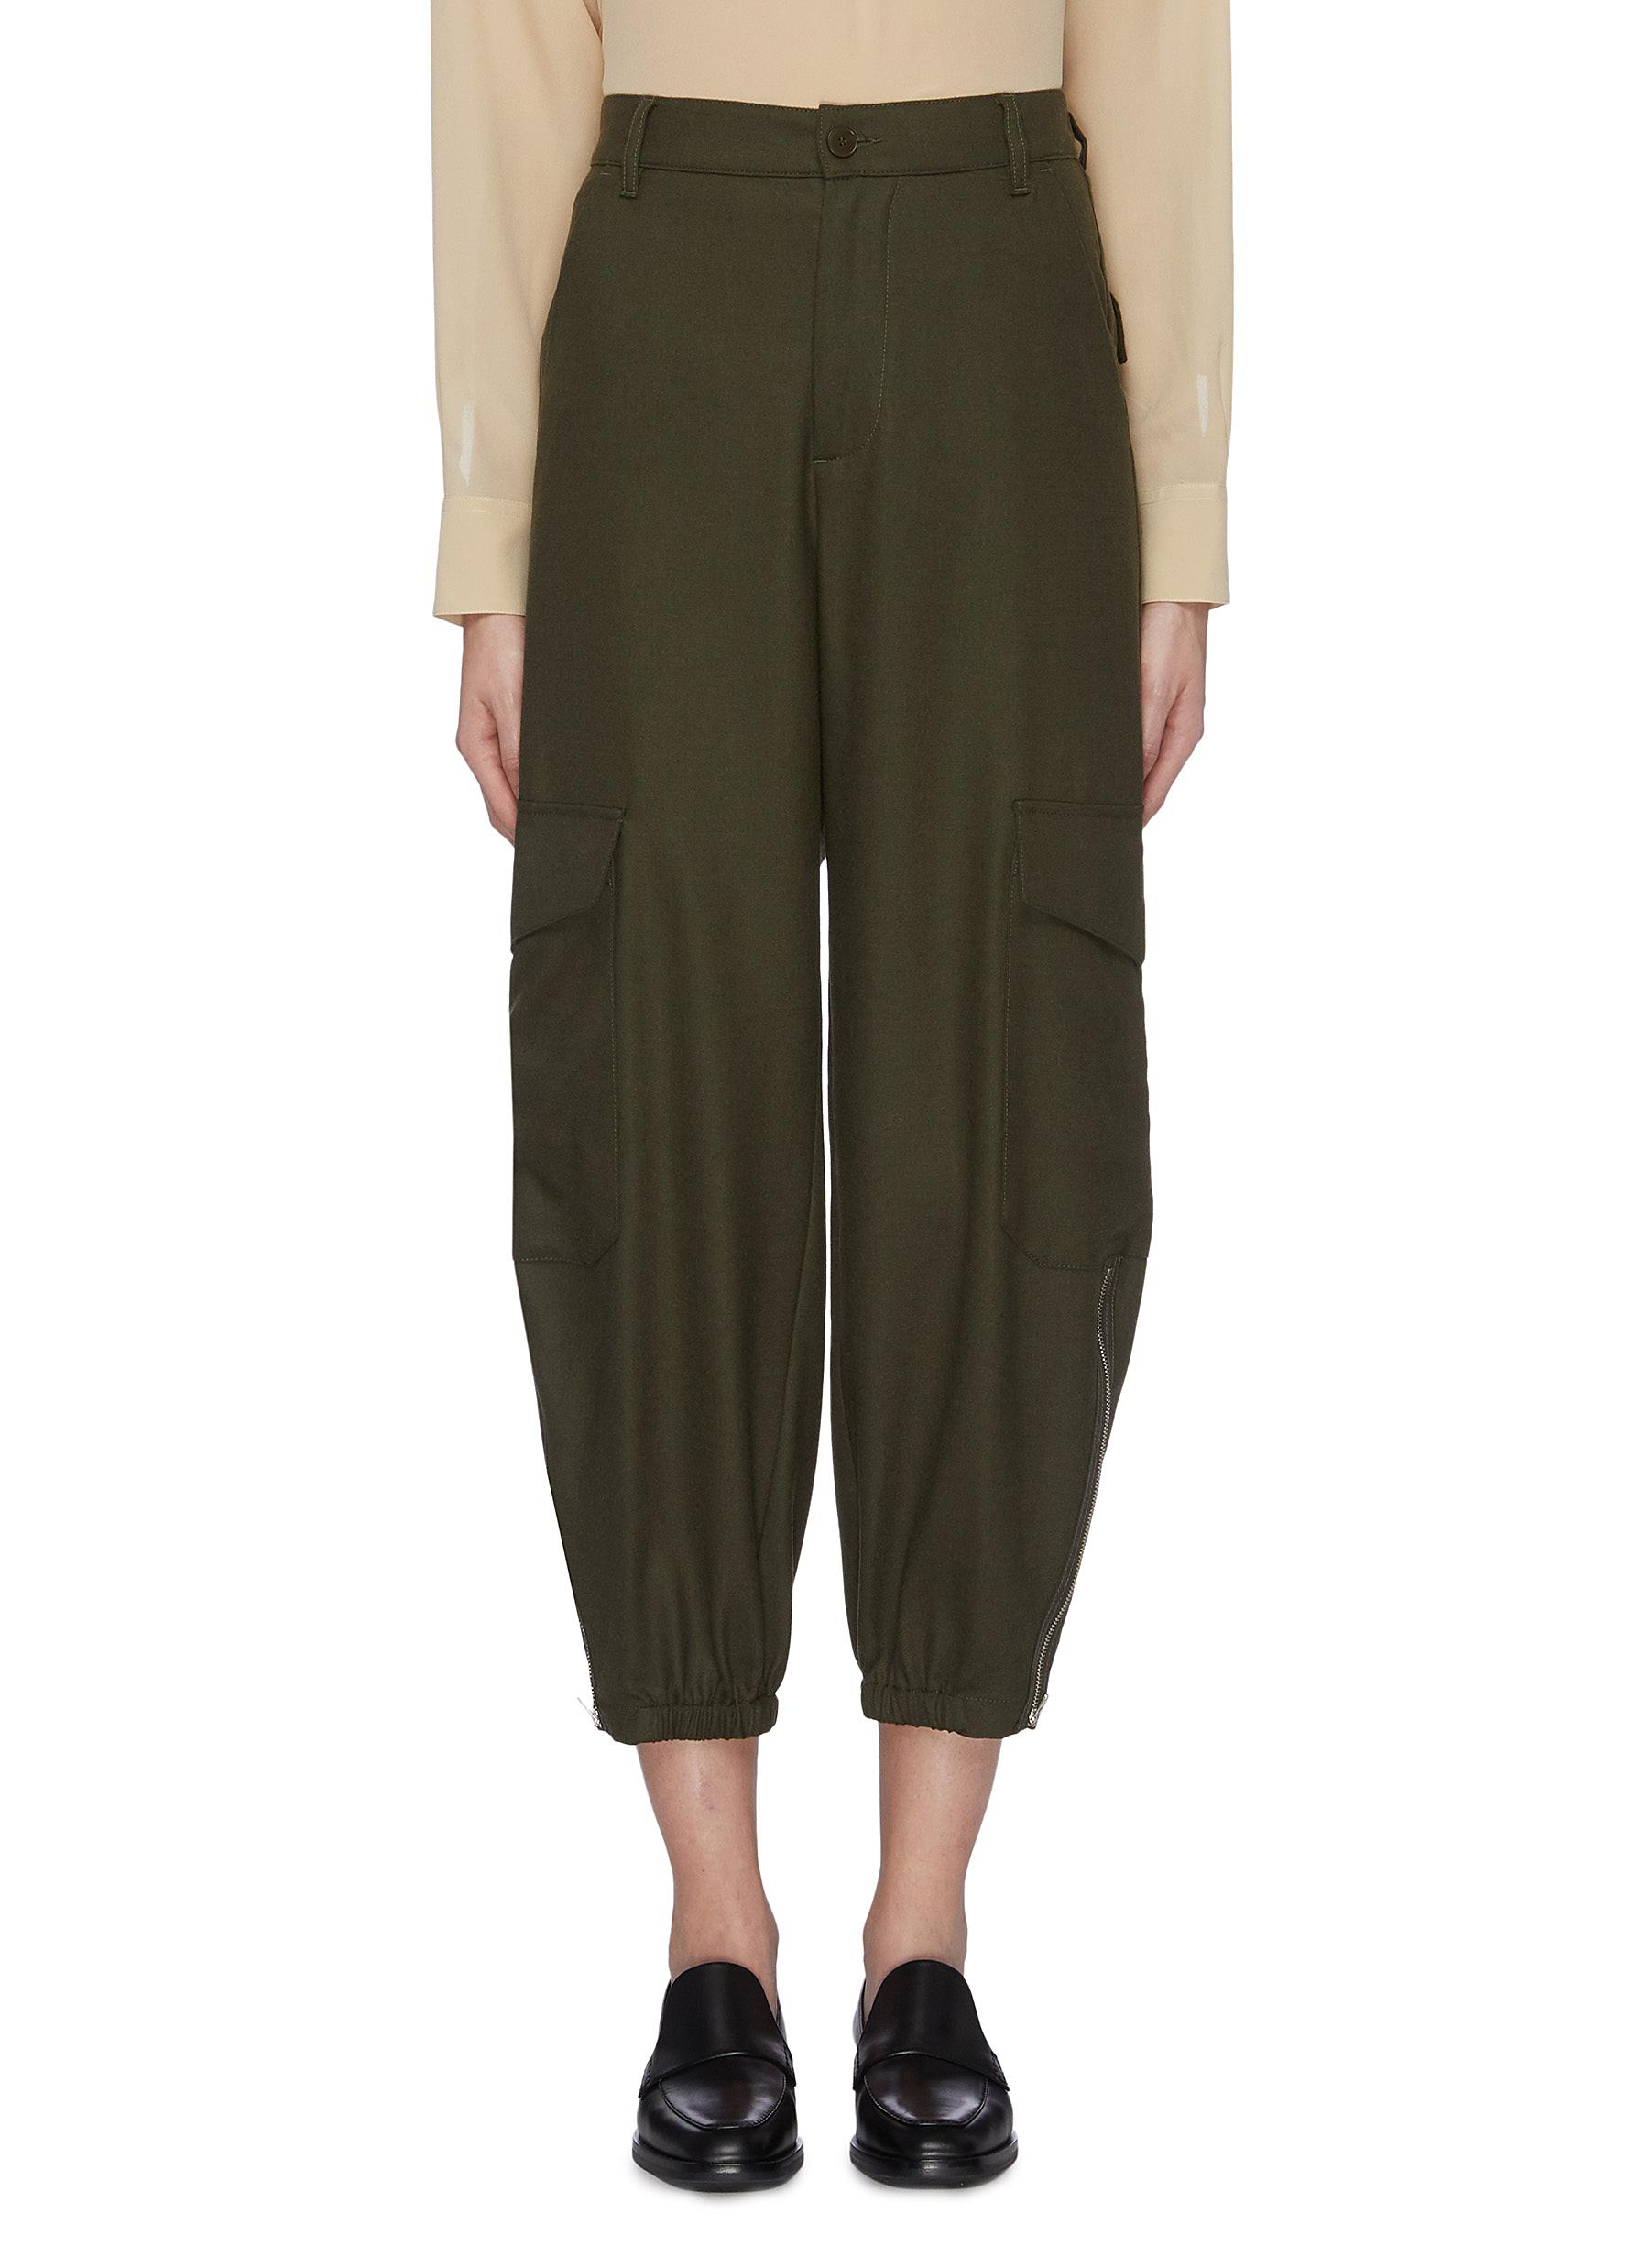 Patch pocket tapered pants by Barena